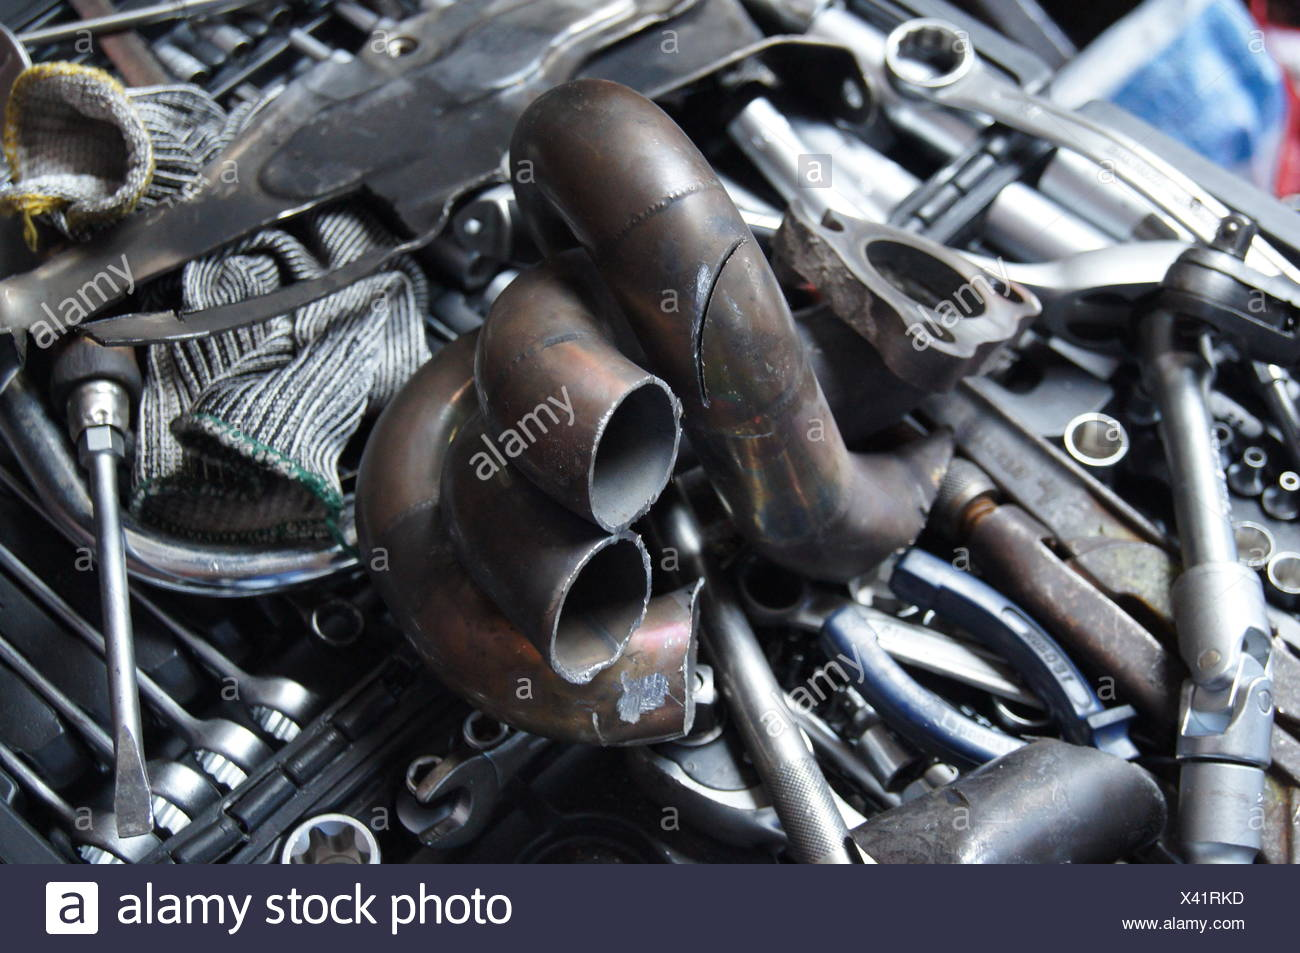 High Angle View Of Piston Amidst Work Tool In Garage - Stock Image